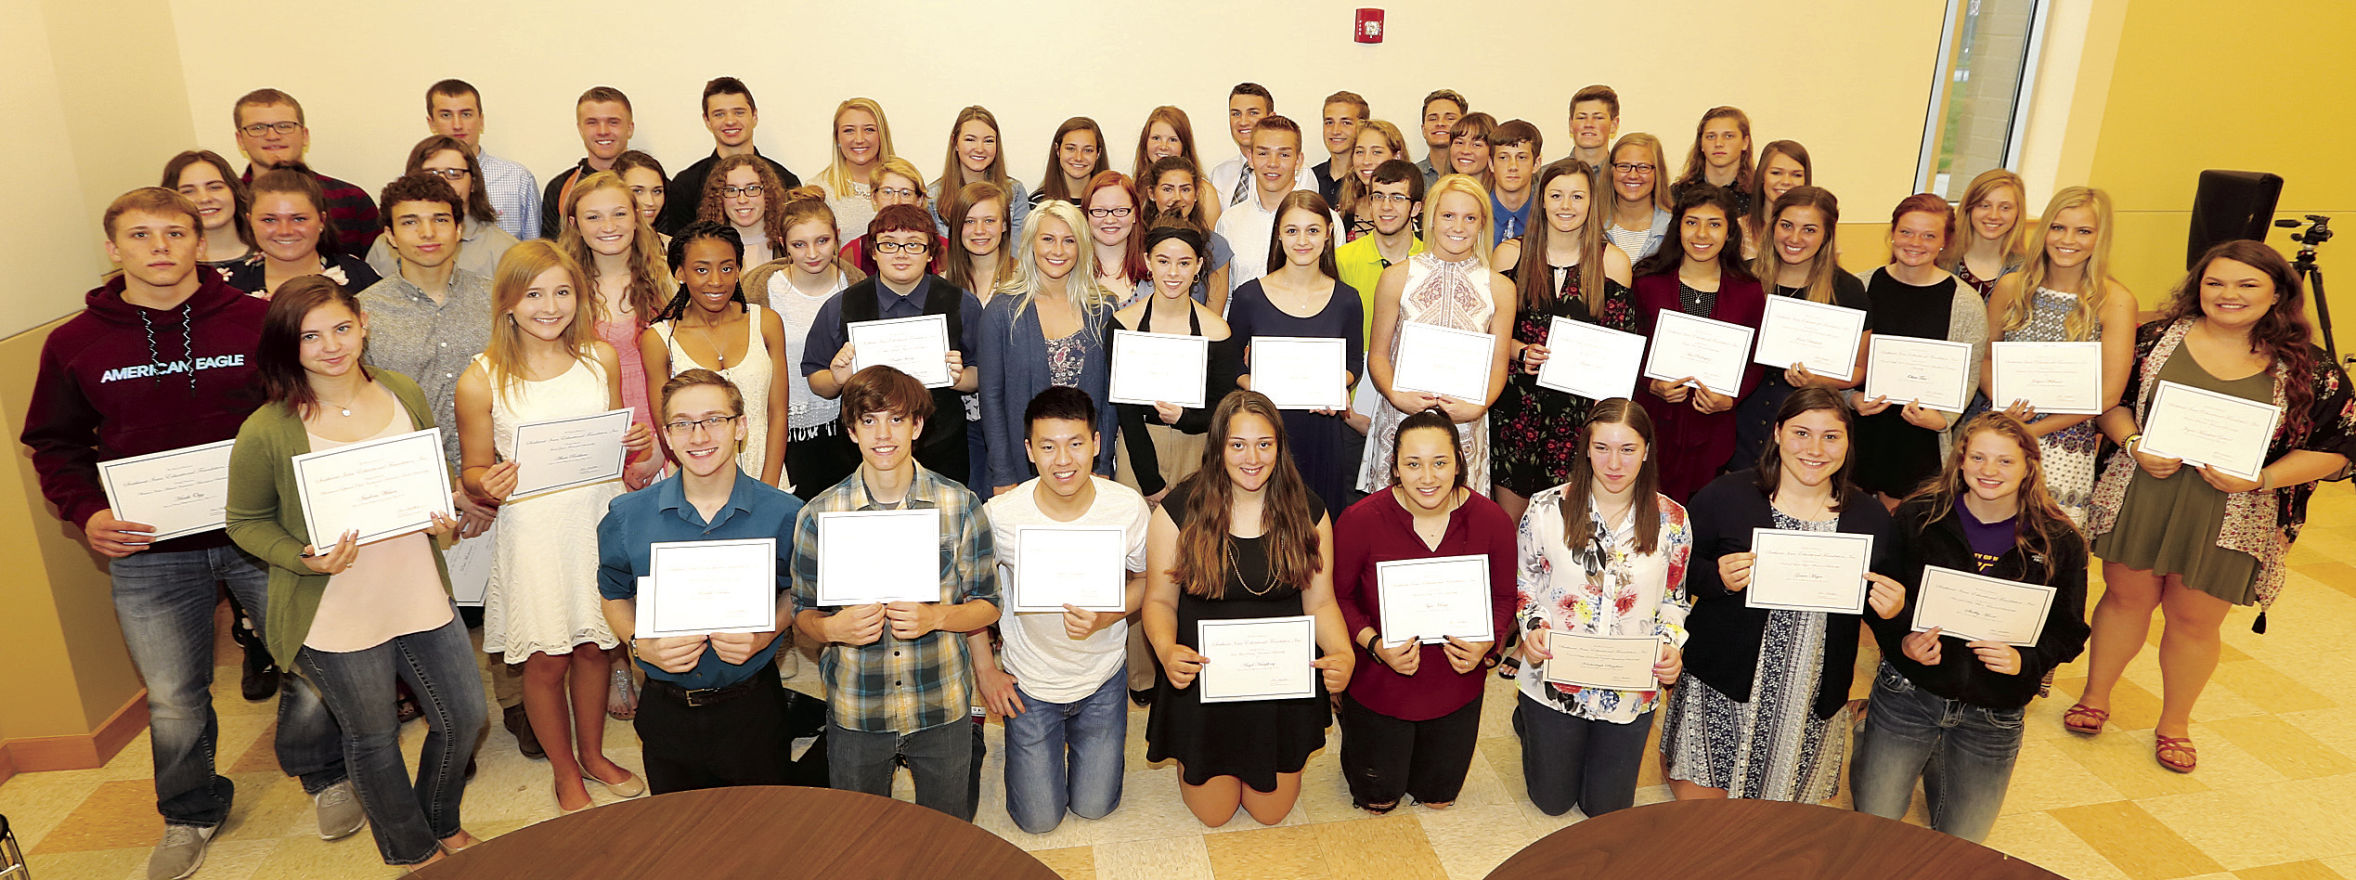 90 area students honored with SWIEF scholarship